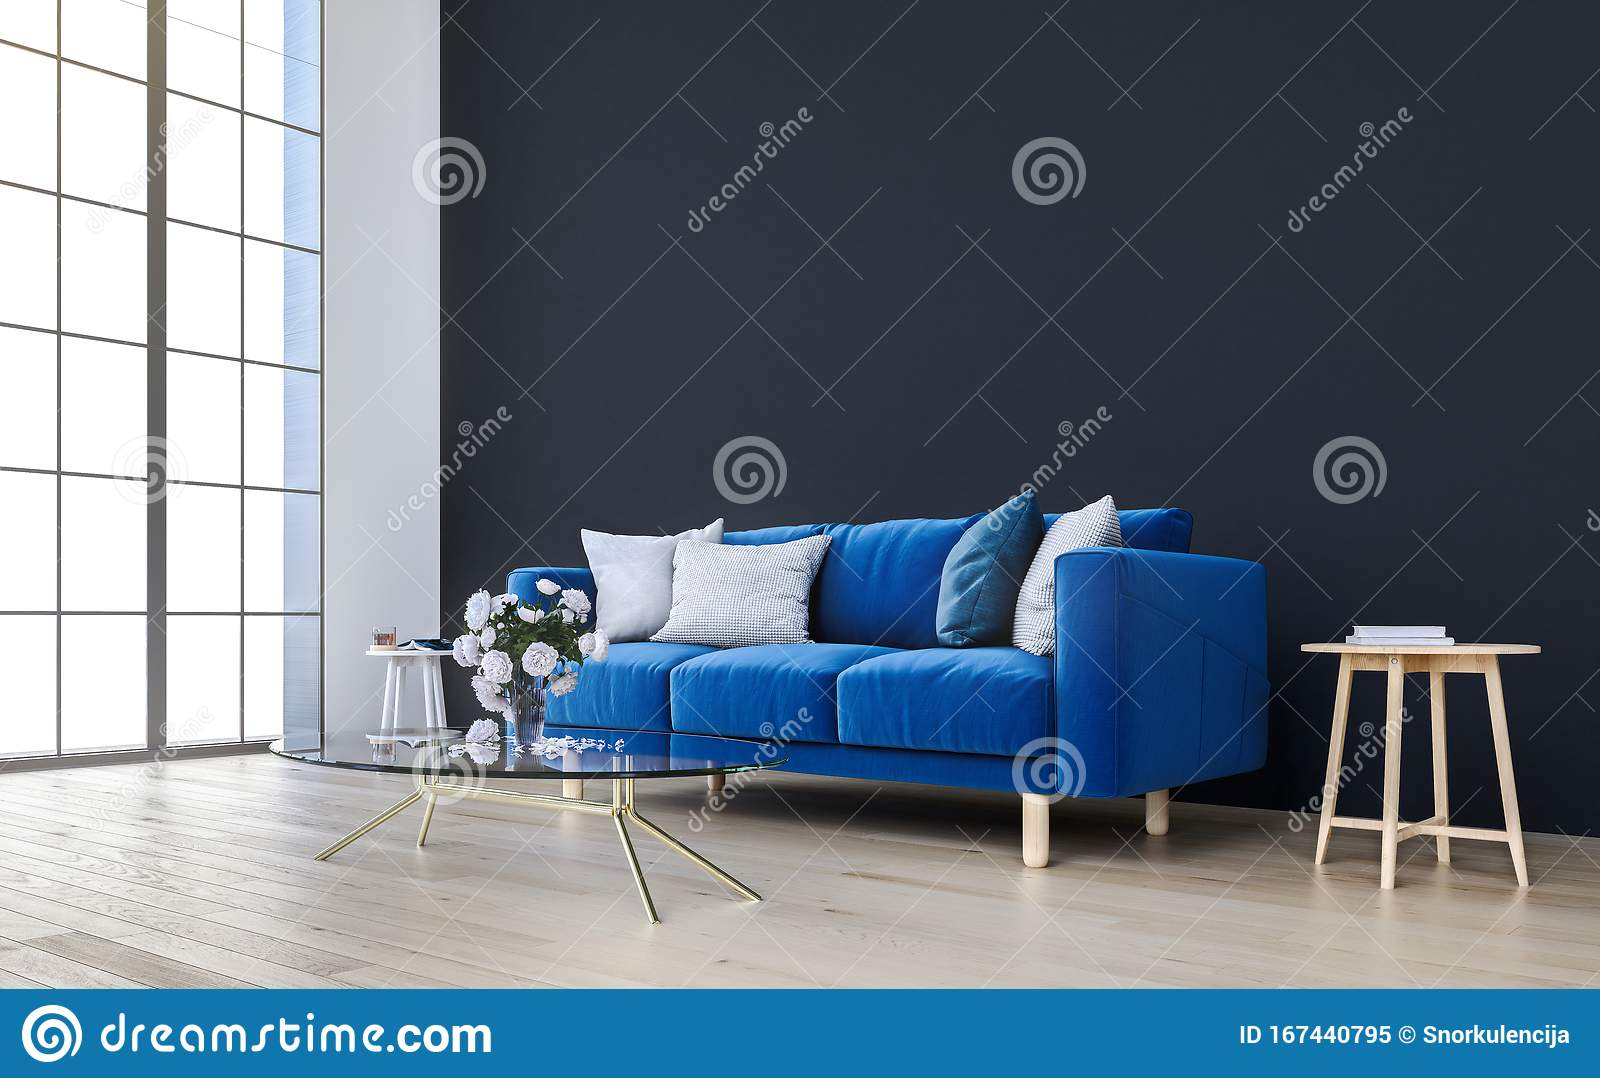 Mock Up Wall With Royal Blue Sofa In Modern Interior Background Living Room Scandinavian Style Stock Illustration Illustration Of Decor Mockup 167440795